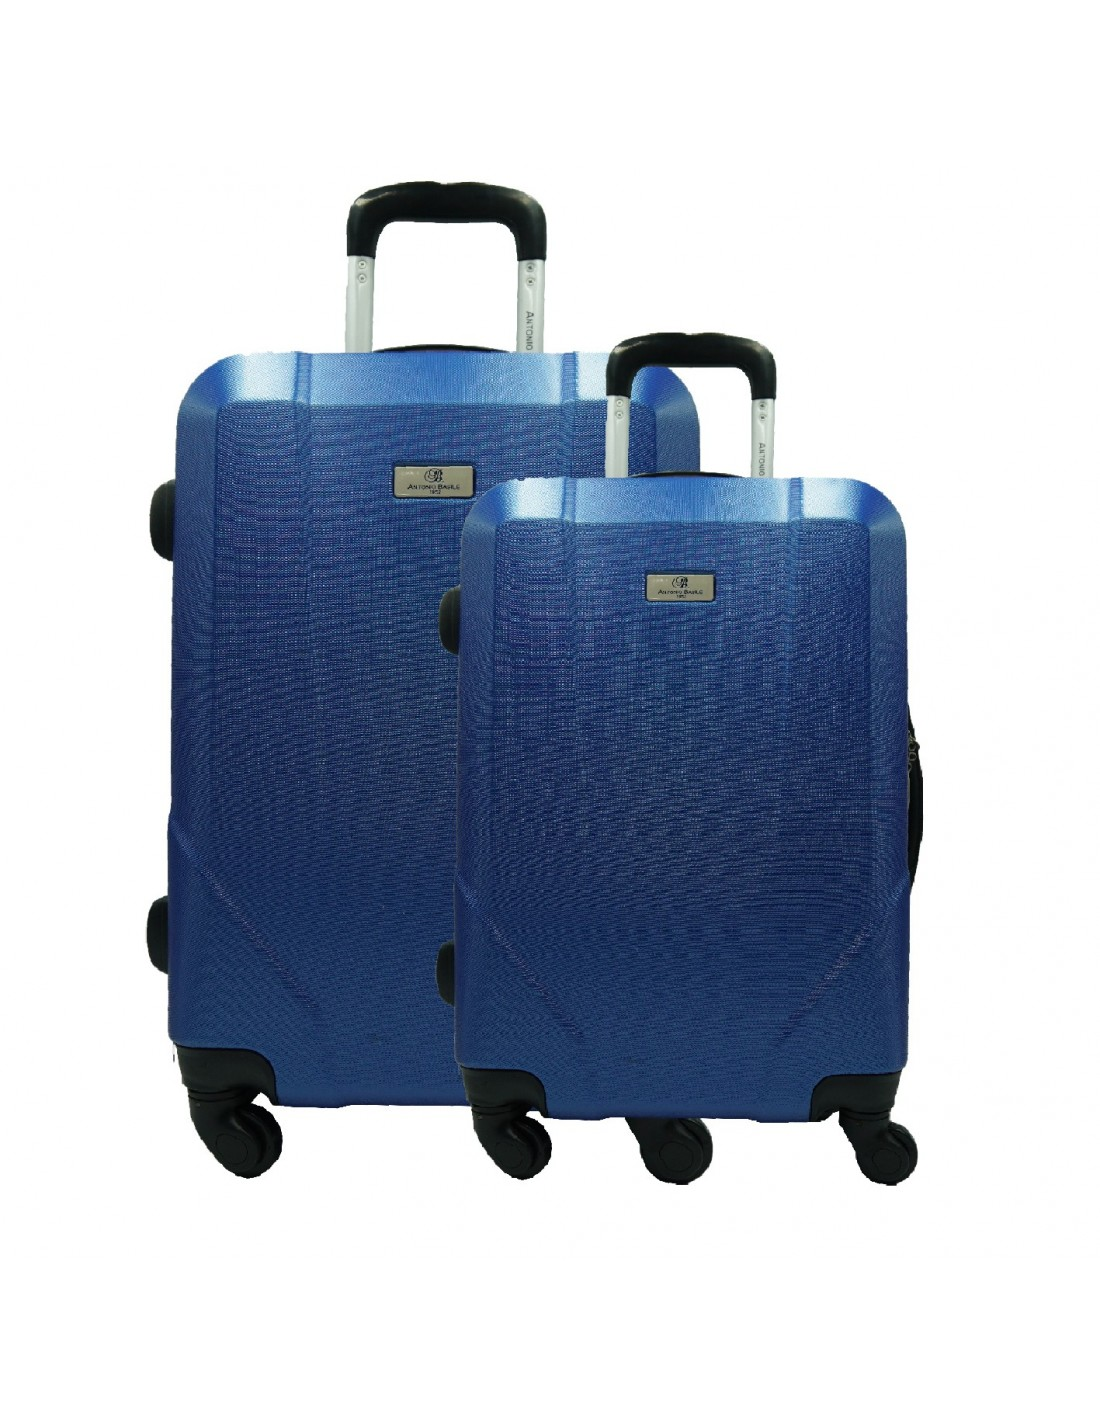 SET TROLLEY 2 PCS RUIAN13_8067 2/RUIAN13_8067